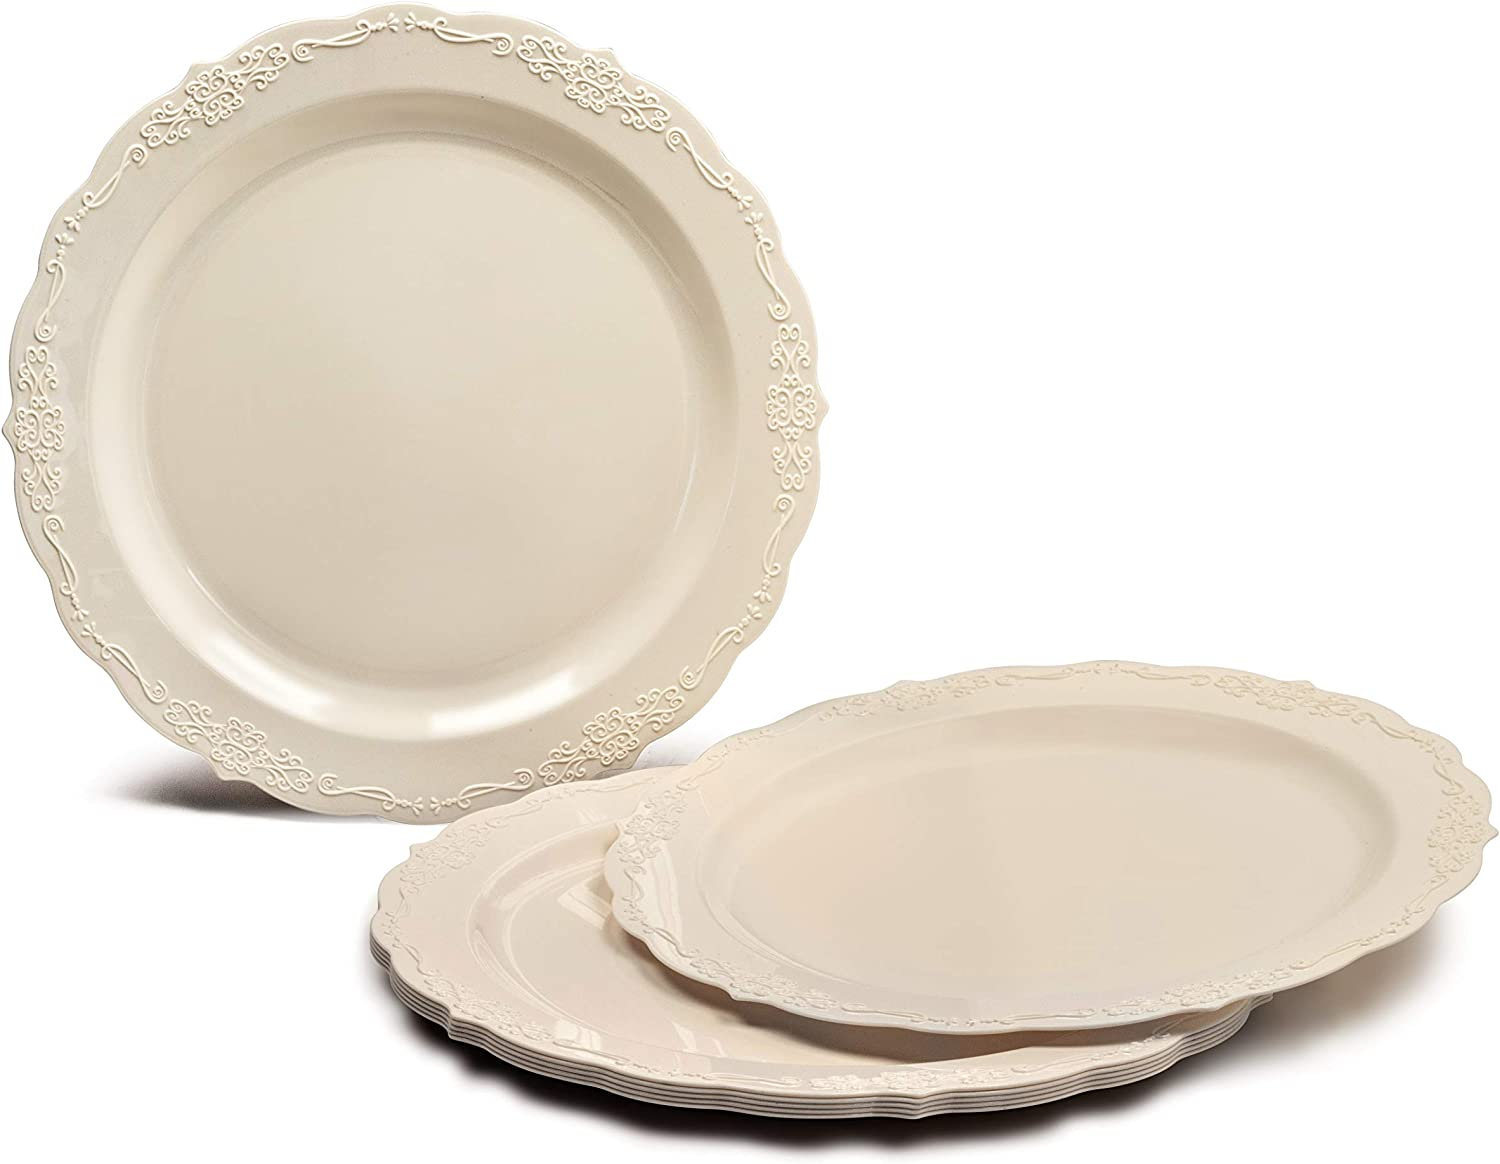 OCCASIONS 120 PACK, Heavyweight Disposable Wedding Party Plastic Plates (10.25'' Dinner Plate, Verona Plain Ivory)